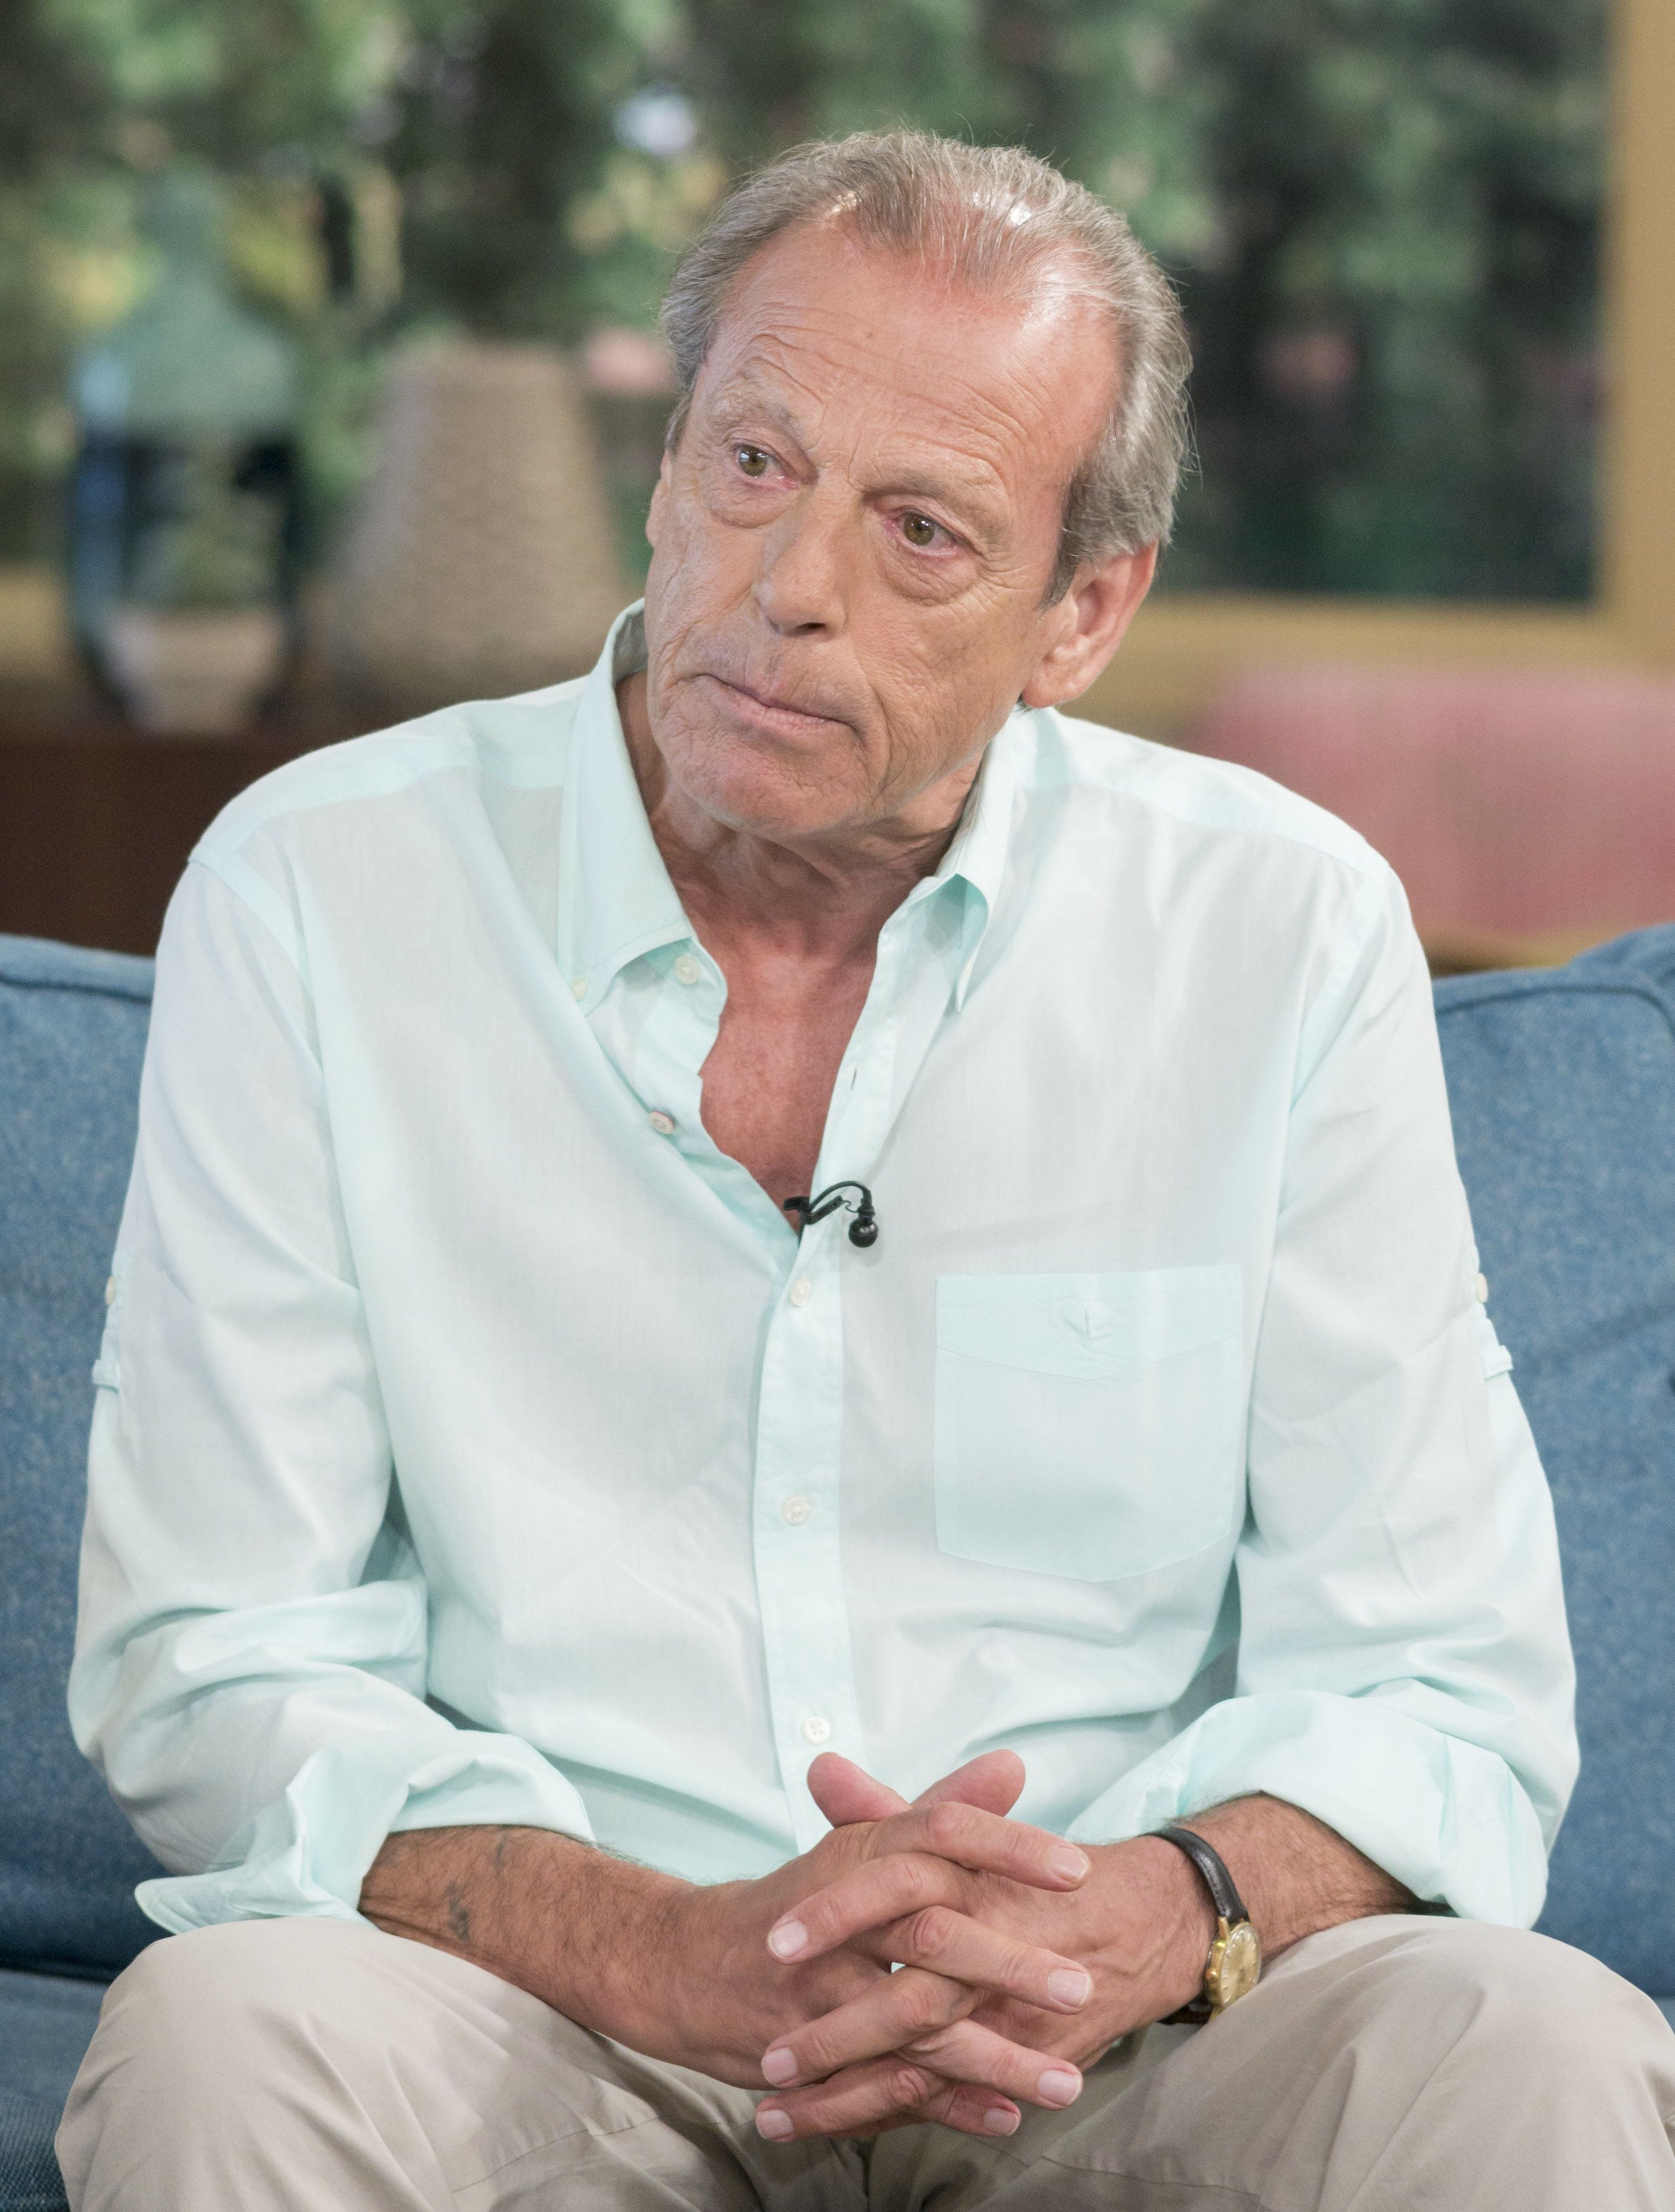 Leslie Grantham has died at the age of